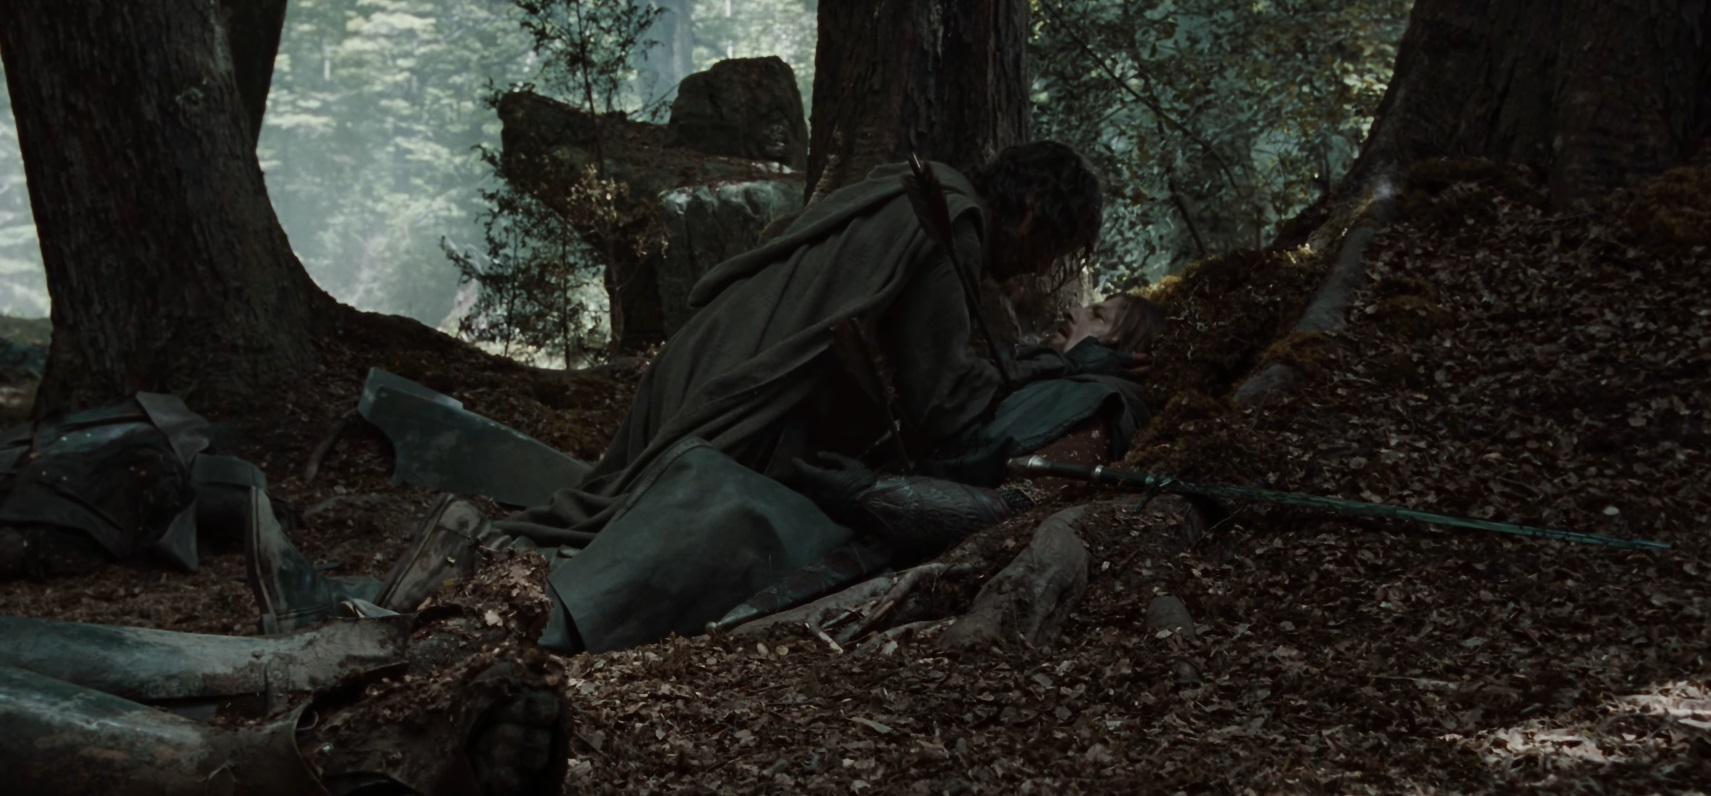 File:Death of Boromir.jpg